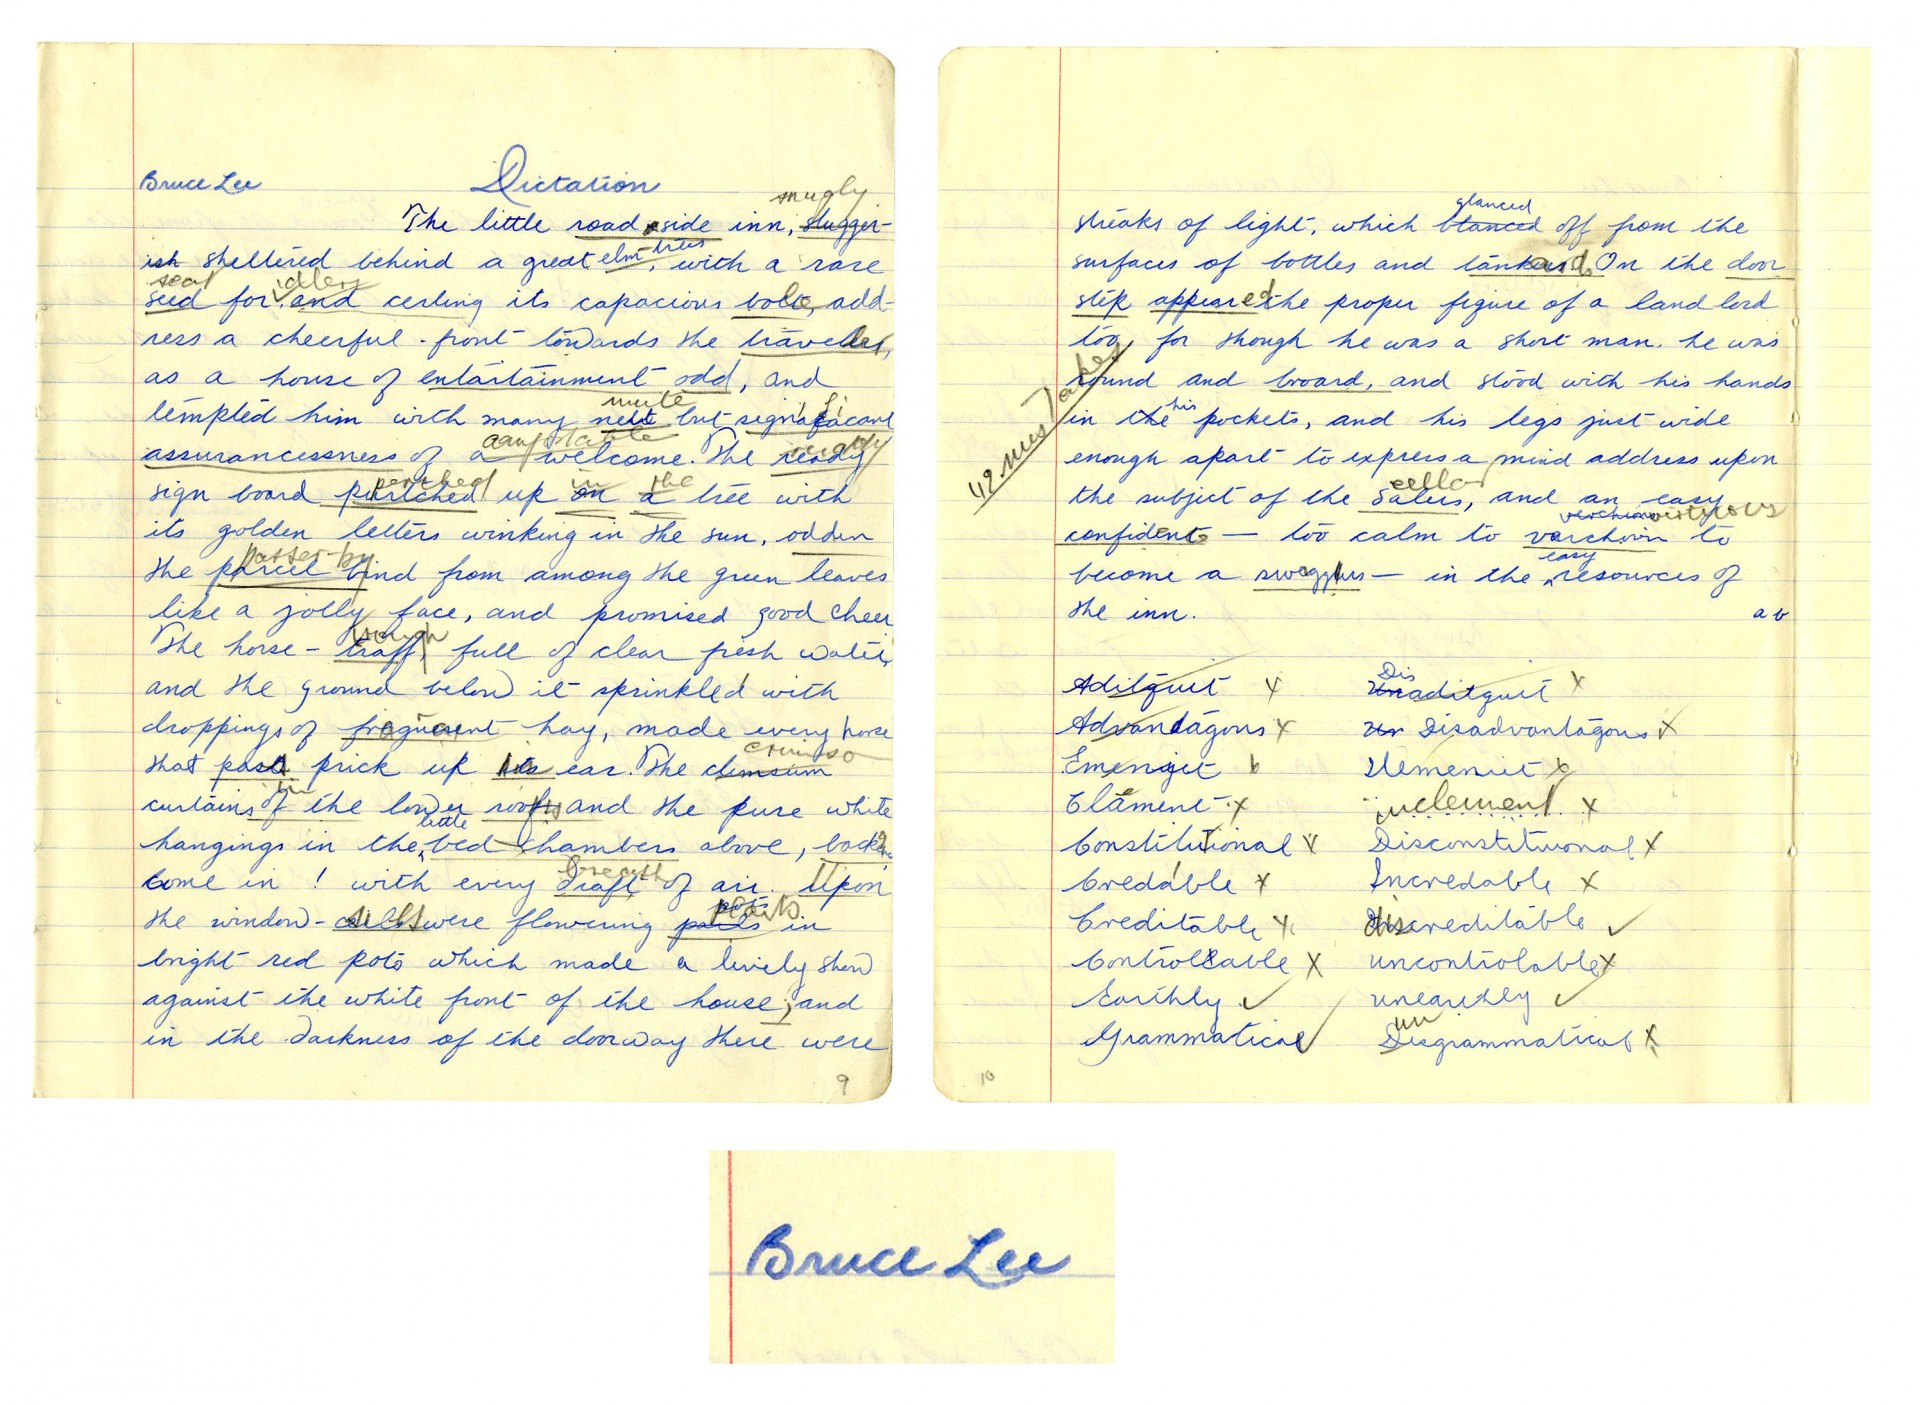 006 Essay Example Bruce Lee Signed 52850 Lg On Fearsome Handwriting Short Importance Of Good In Hindi Gujarati 1920